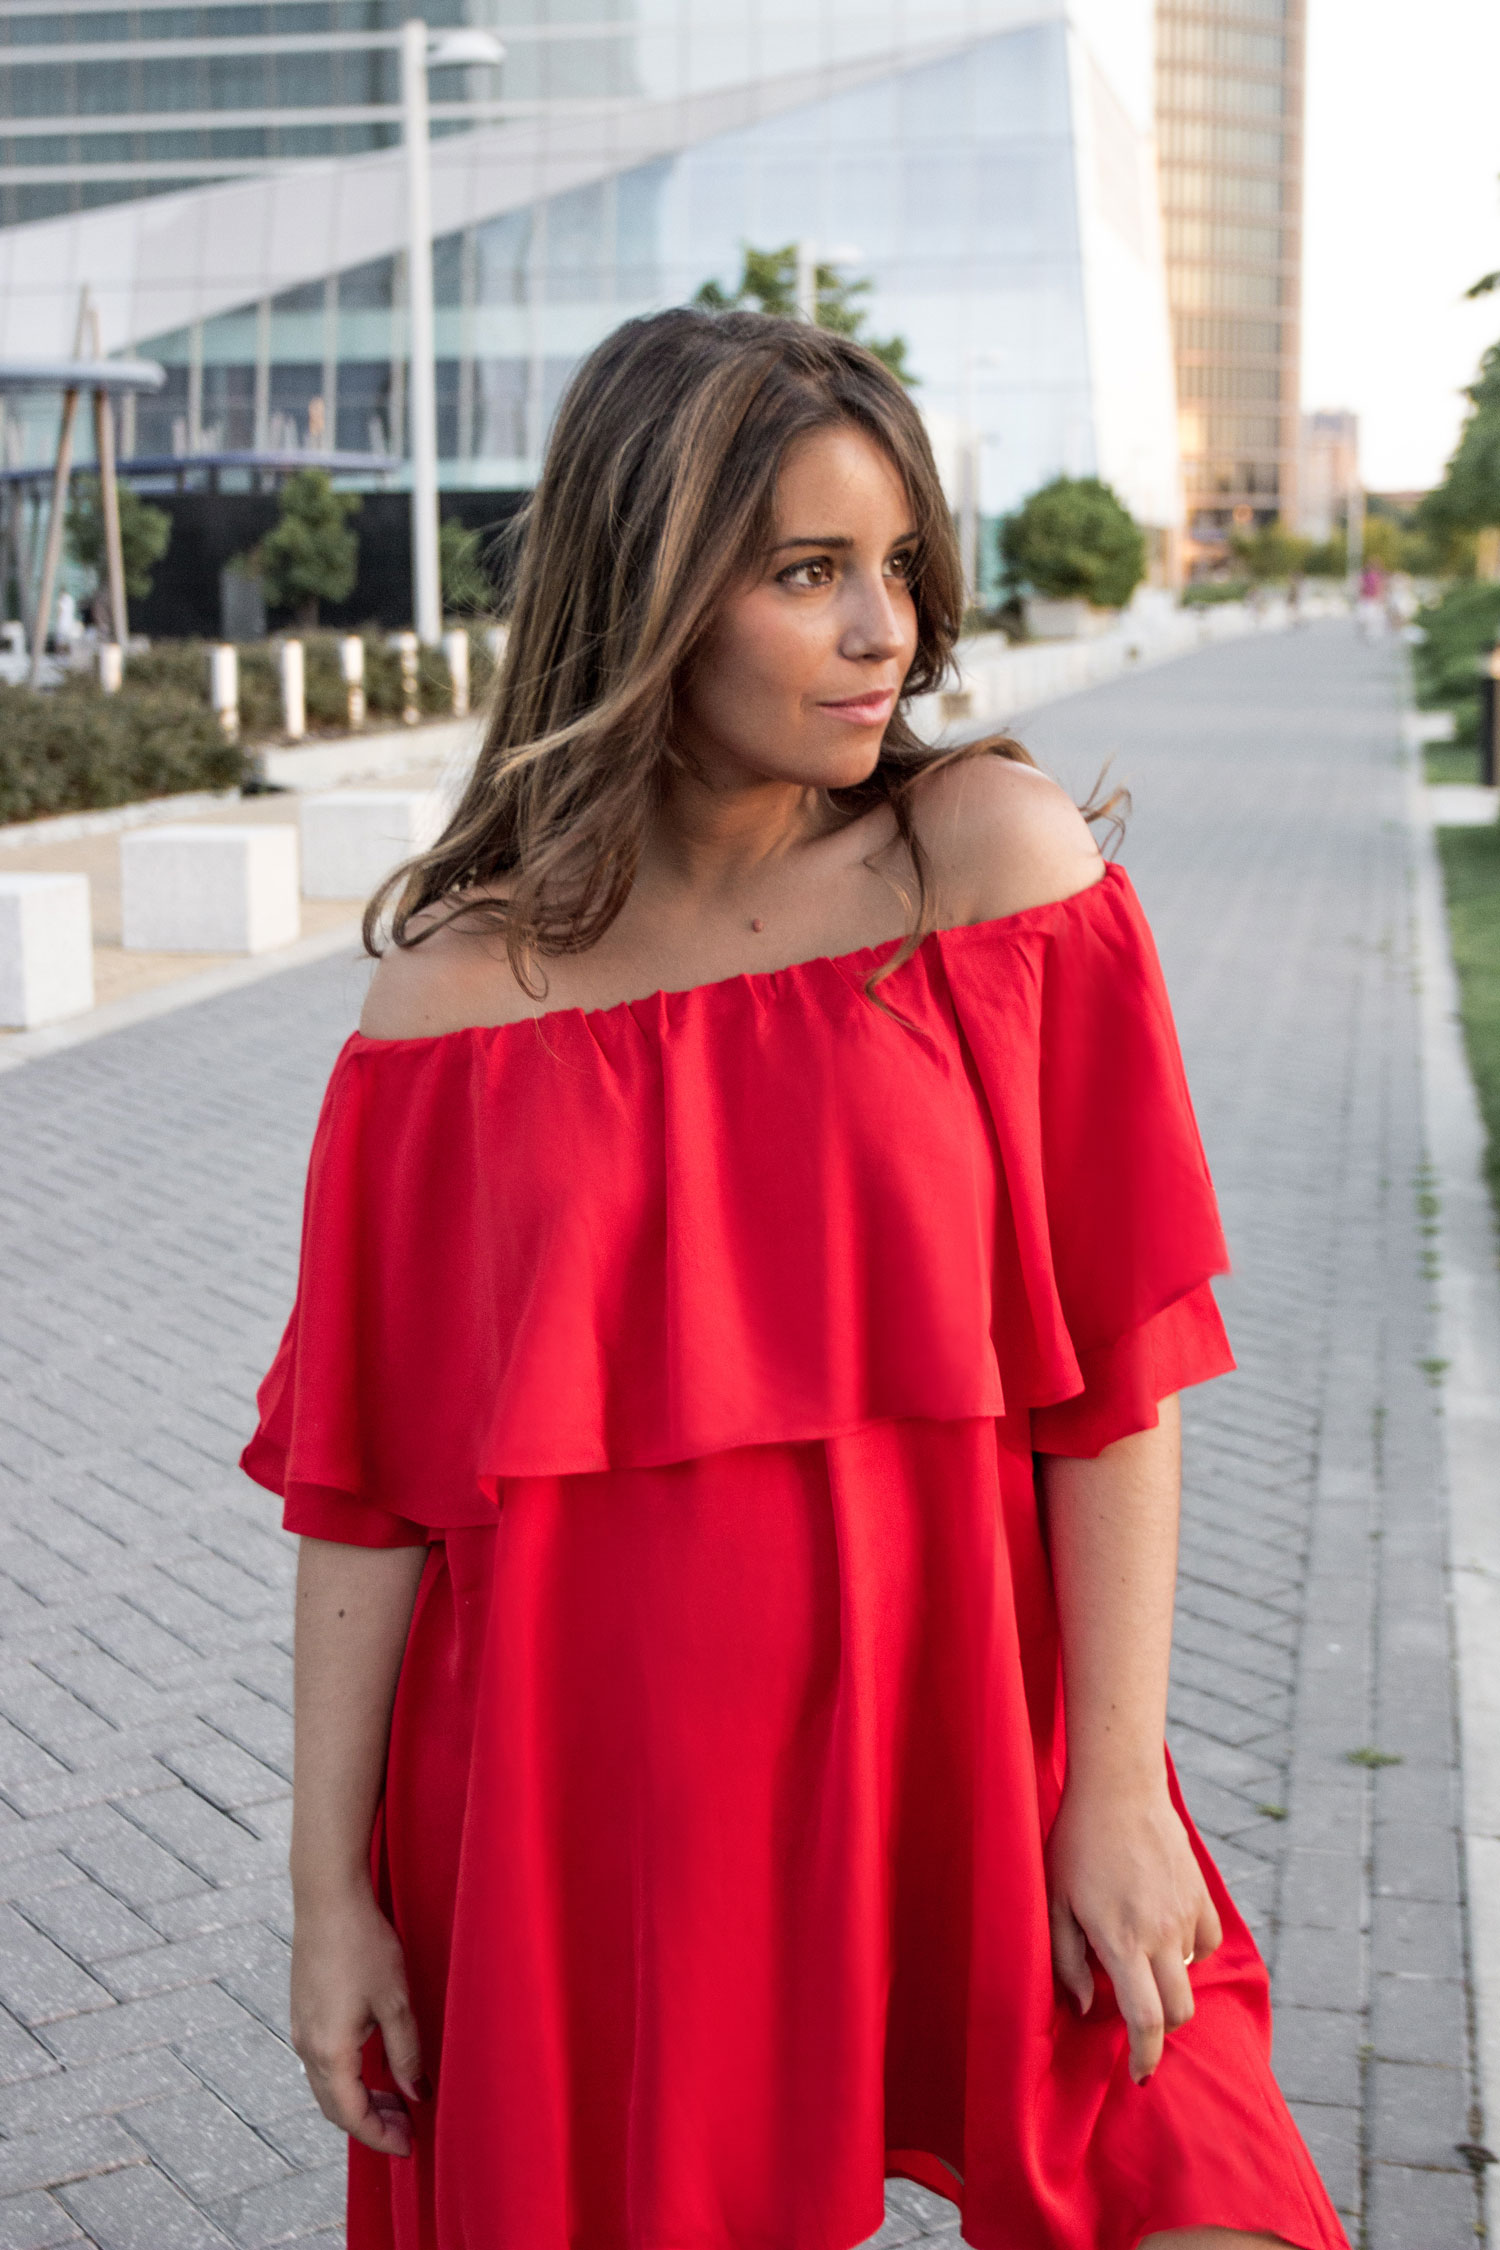 madeinstyle_she_in_red_dress_vestido_rojo_summer_closs_earrings-6